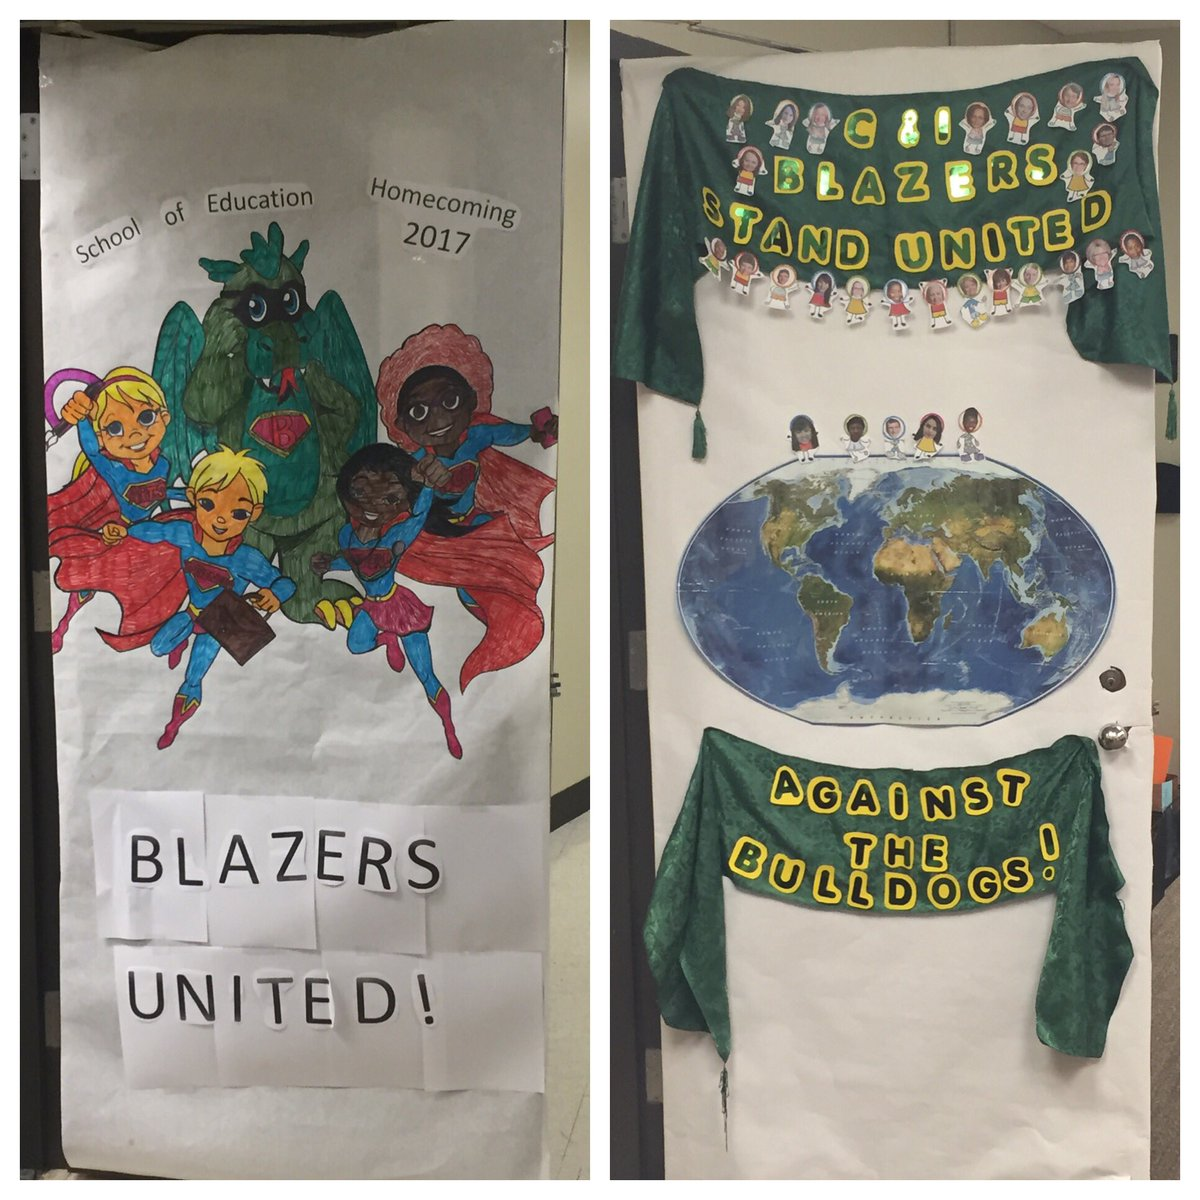 uab education on twitter door decorations for homecoming